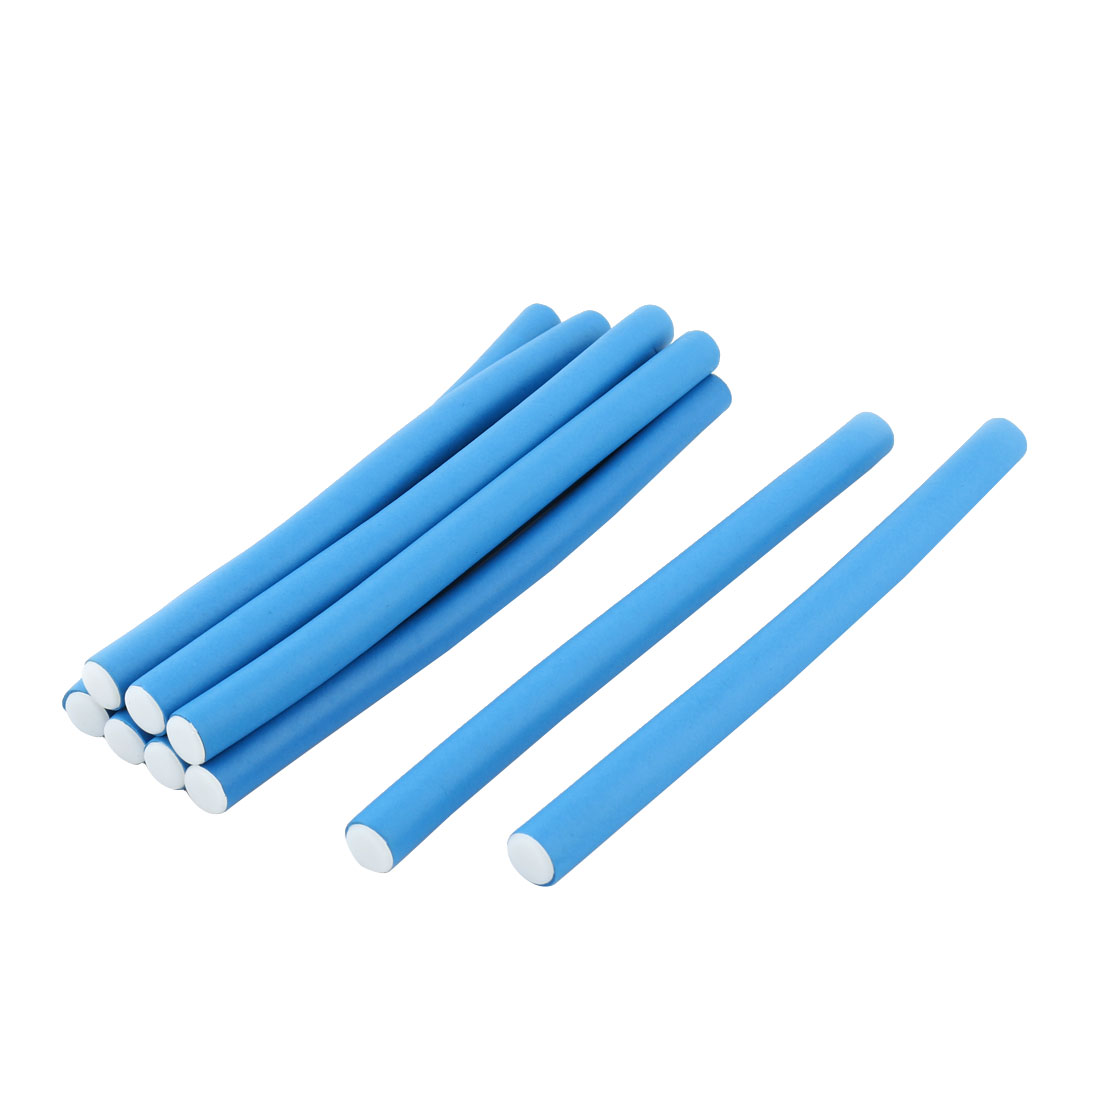 Ladies Sponge Perm Hairstyle Curler Rollers Curling Hair Rods Blue 9 Pcs